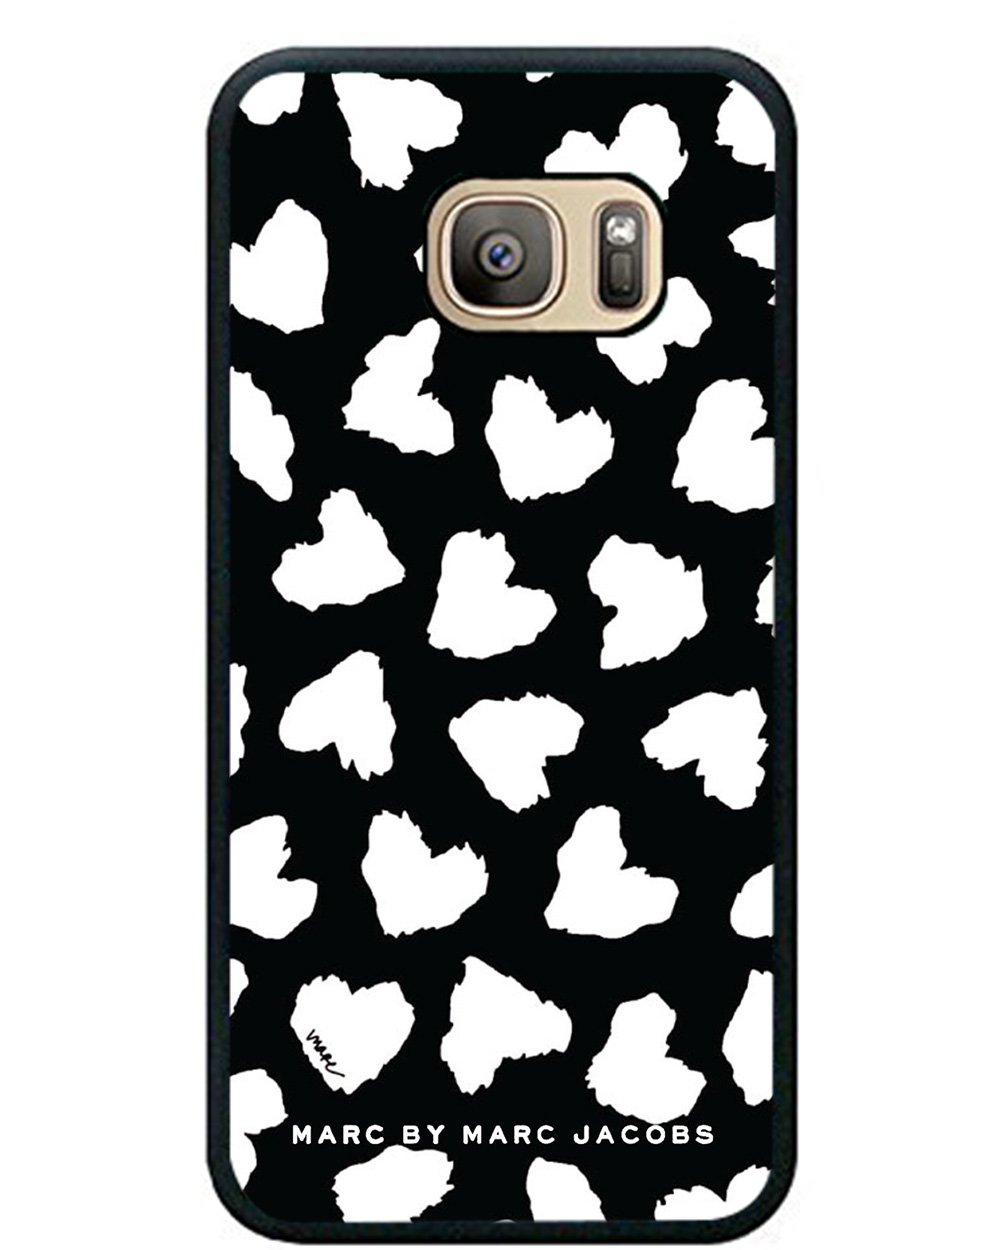 Eocy Custom TPU Phone Case For Samsung Galaxy S7,Marc Jacobs